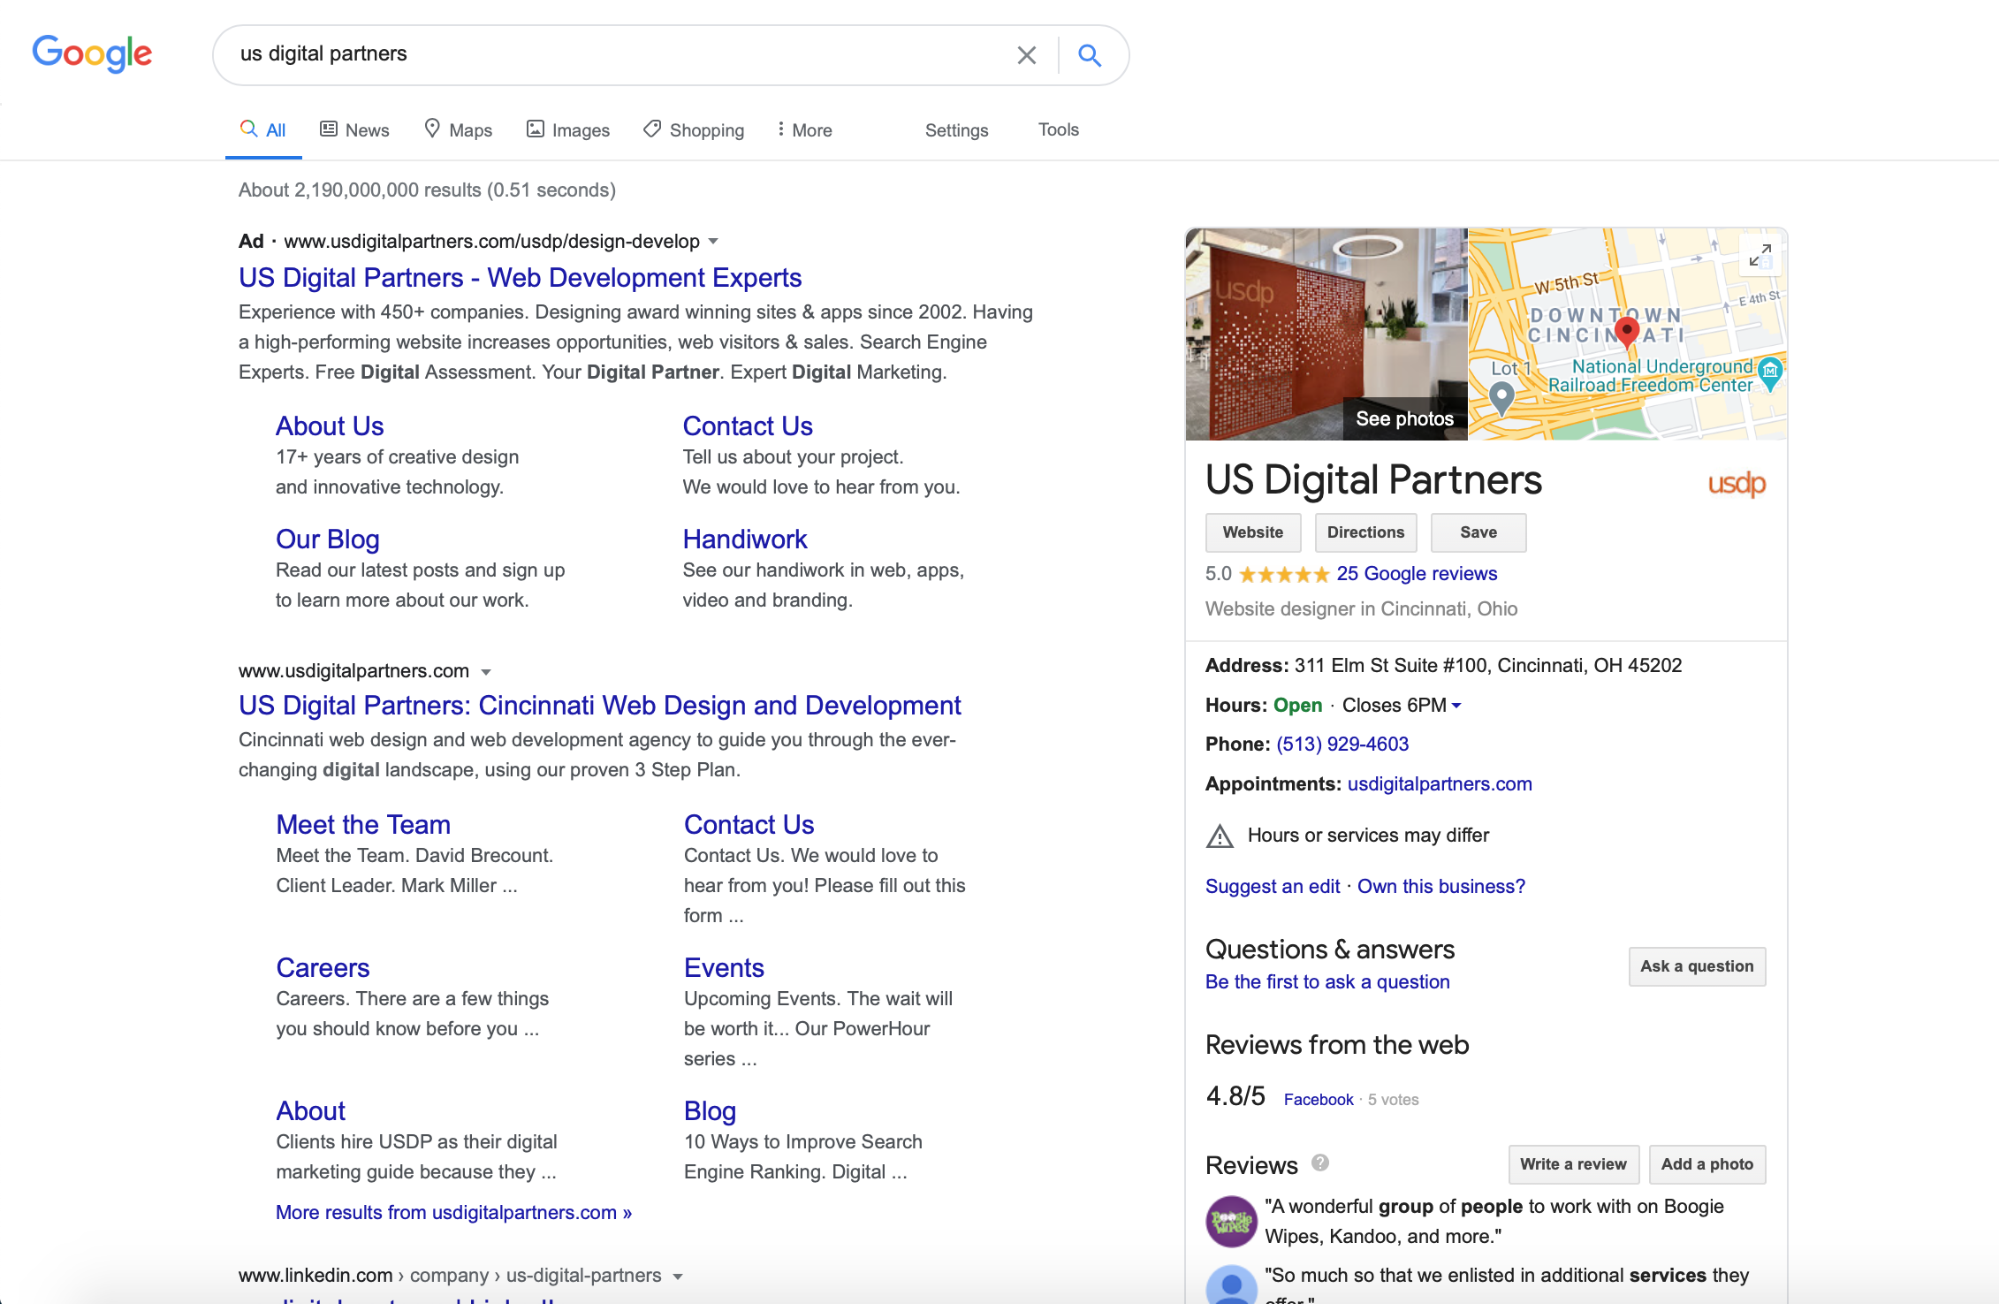 Google search result for US Digital Partners